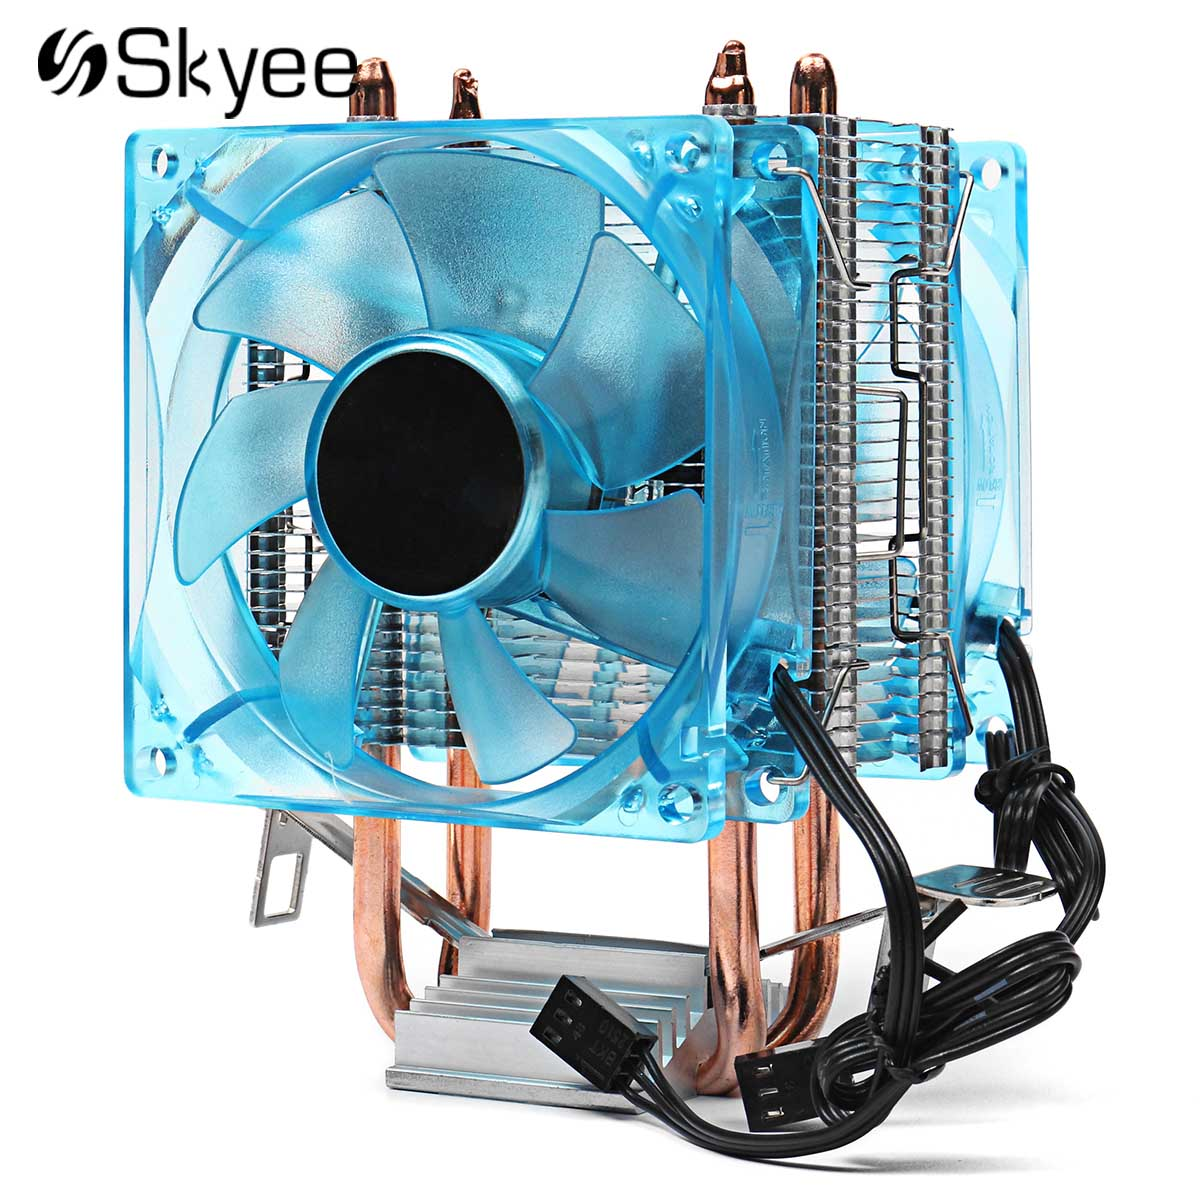 Aluminum CPU Cooling Fan Cooler Heatsink Fan 90mm Dual Copper Pipe LED CPU Cooling Fan for AMD FM1 AM2+ AM3+ Intel 775 1155 1156 4 heatpipe 130w red cpu cooler 3 pin fan heatsink for intel lga2011 amd am2 754 l059 new hot